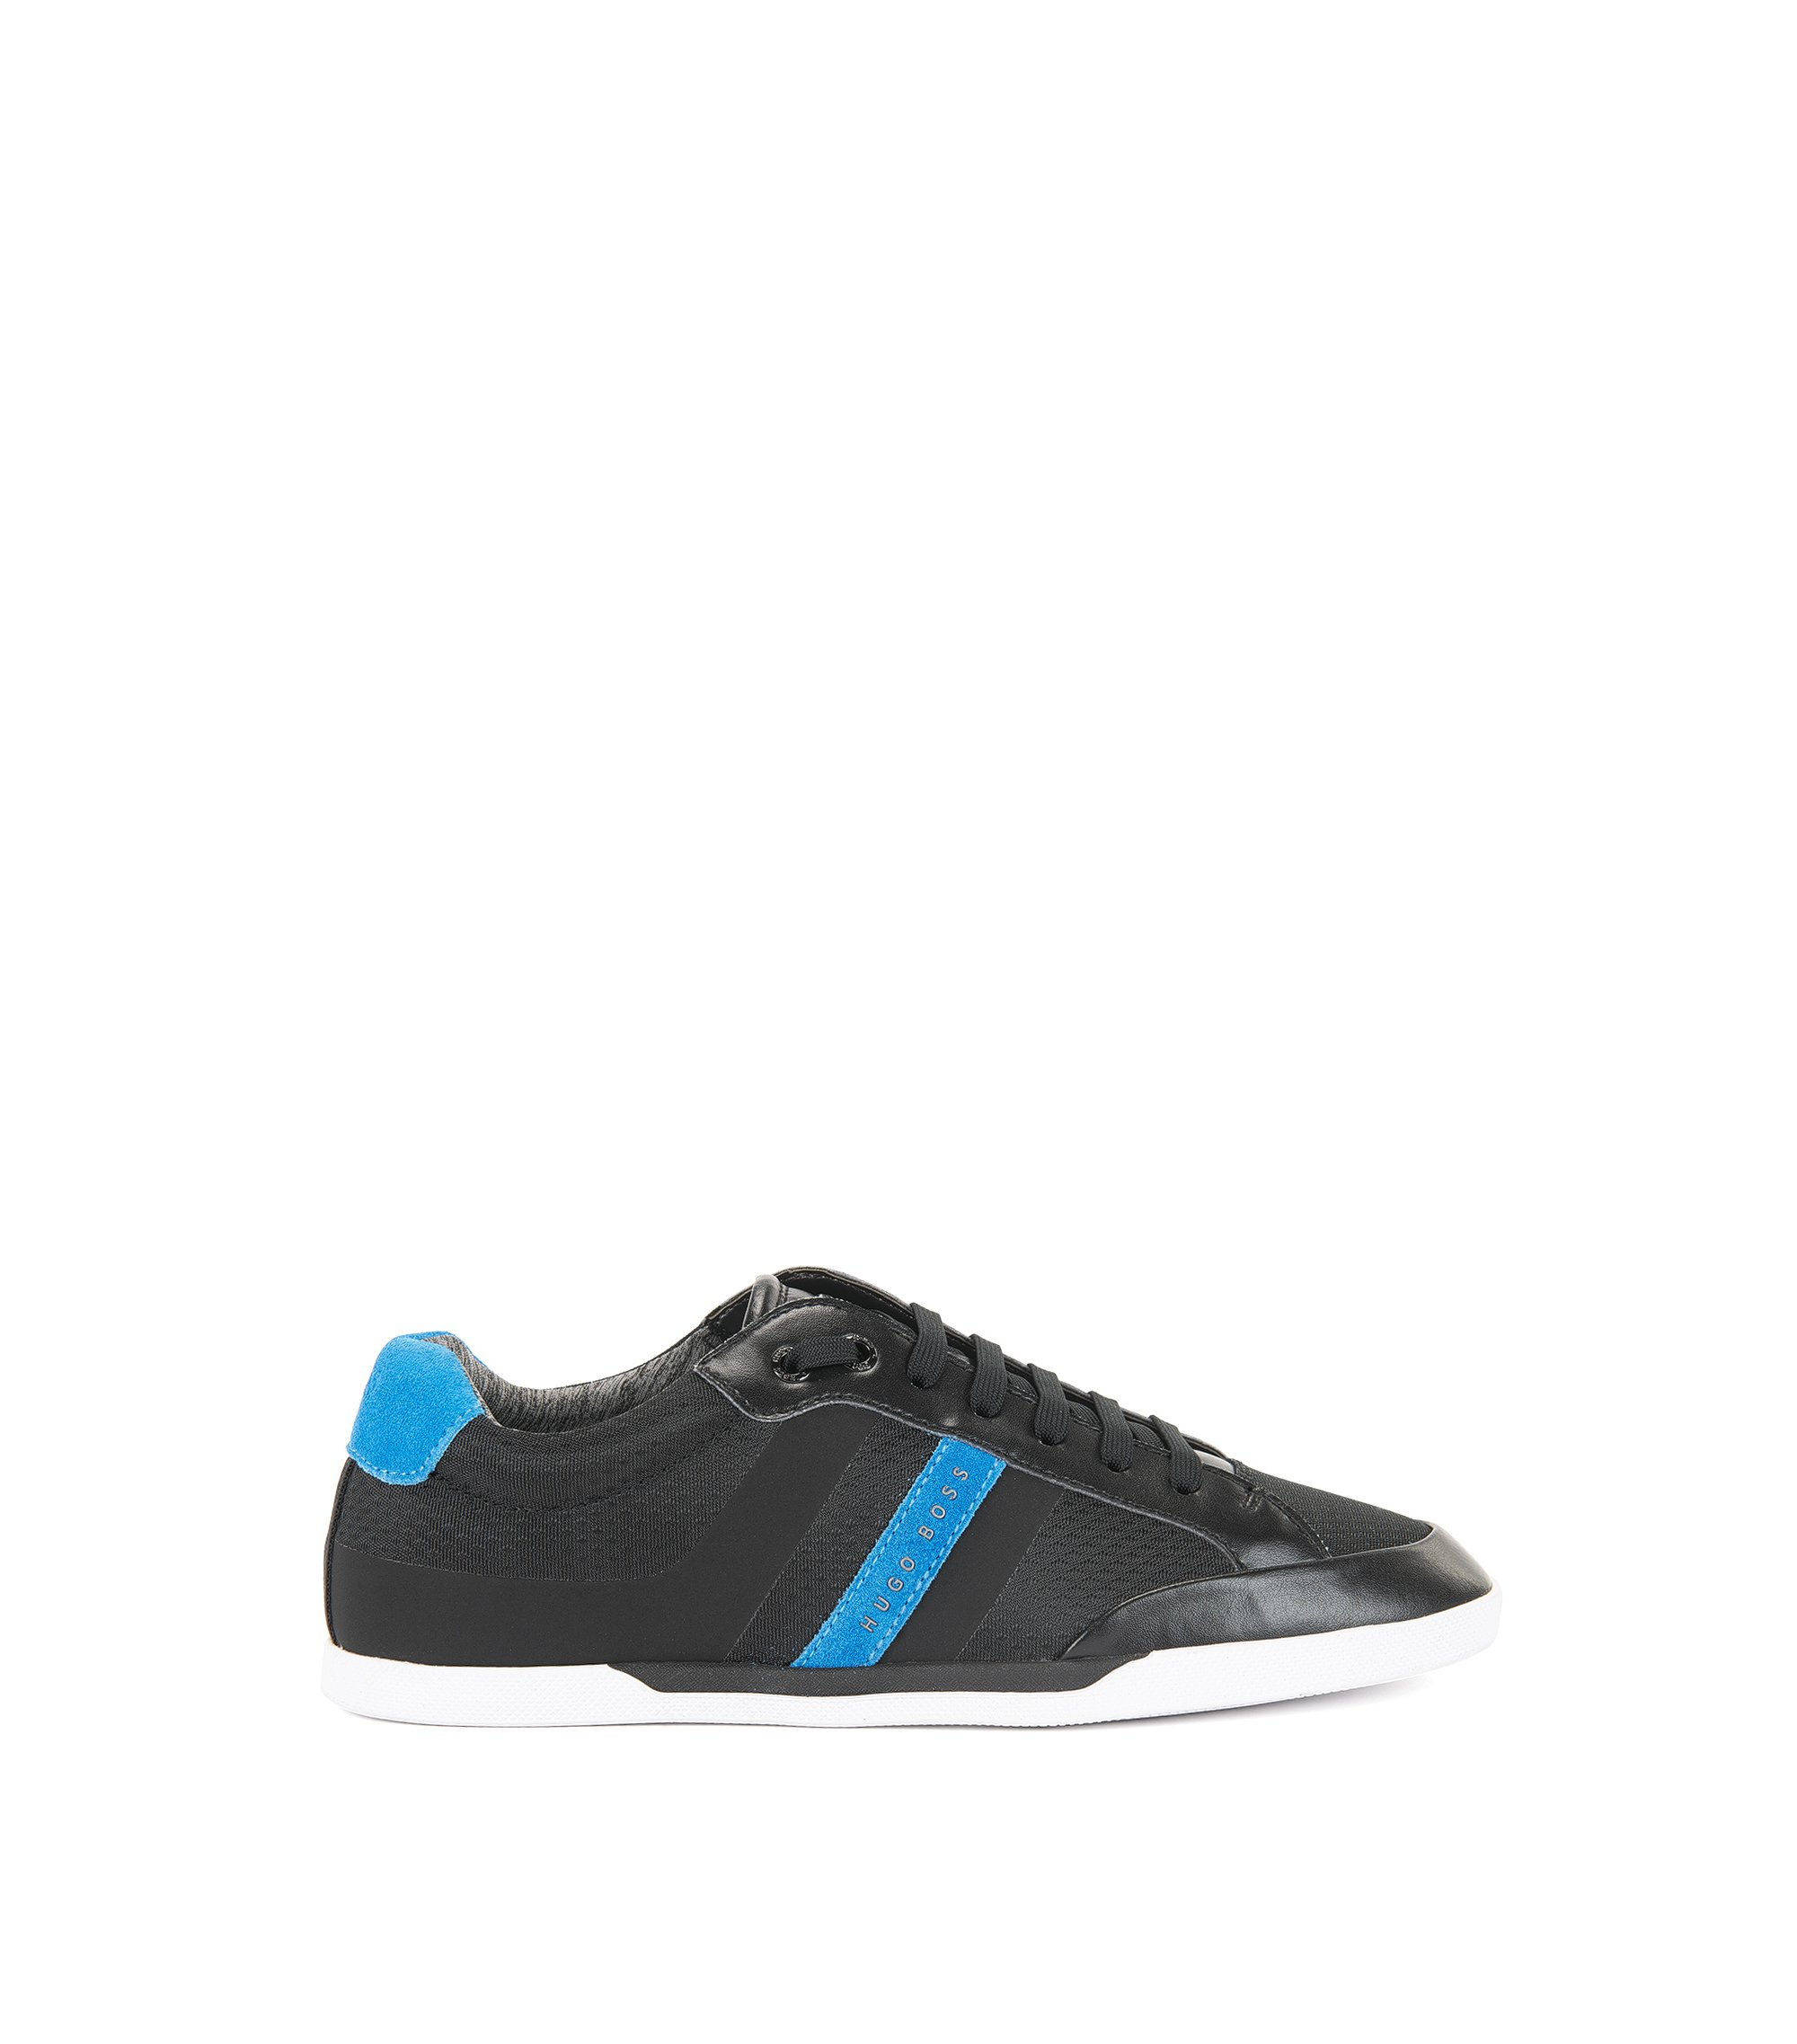 Mesh Sneaker | Shuttle Tenn It, Black